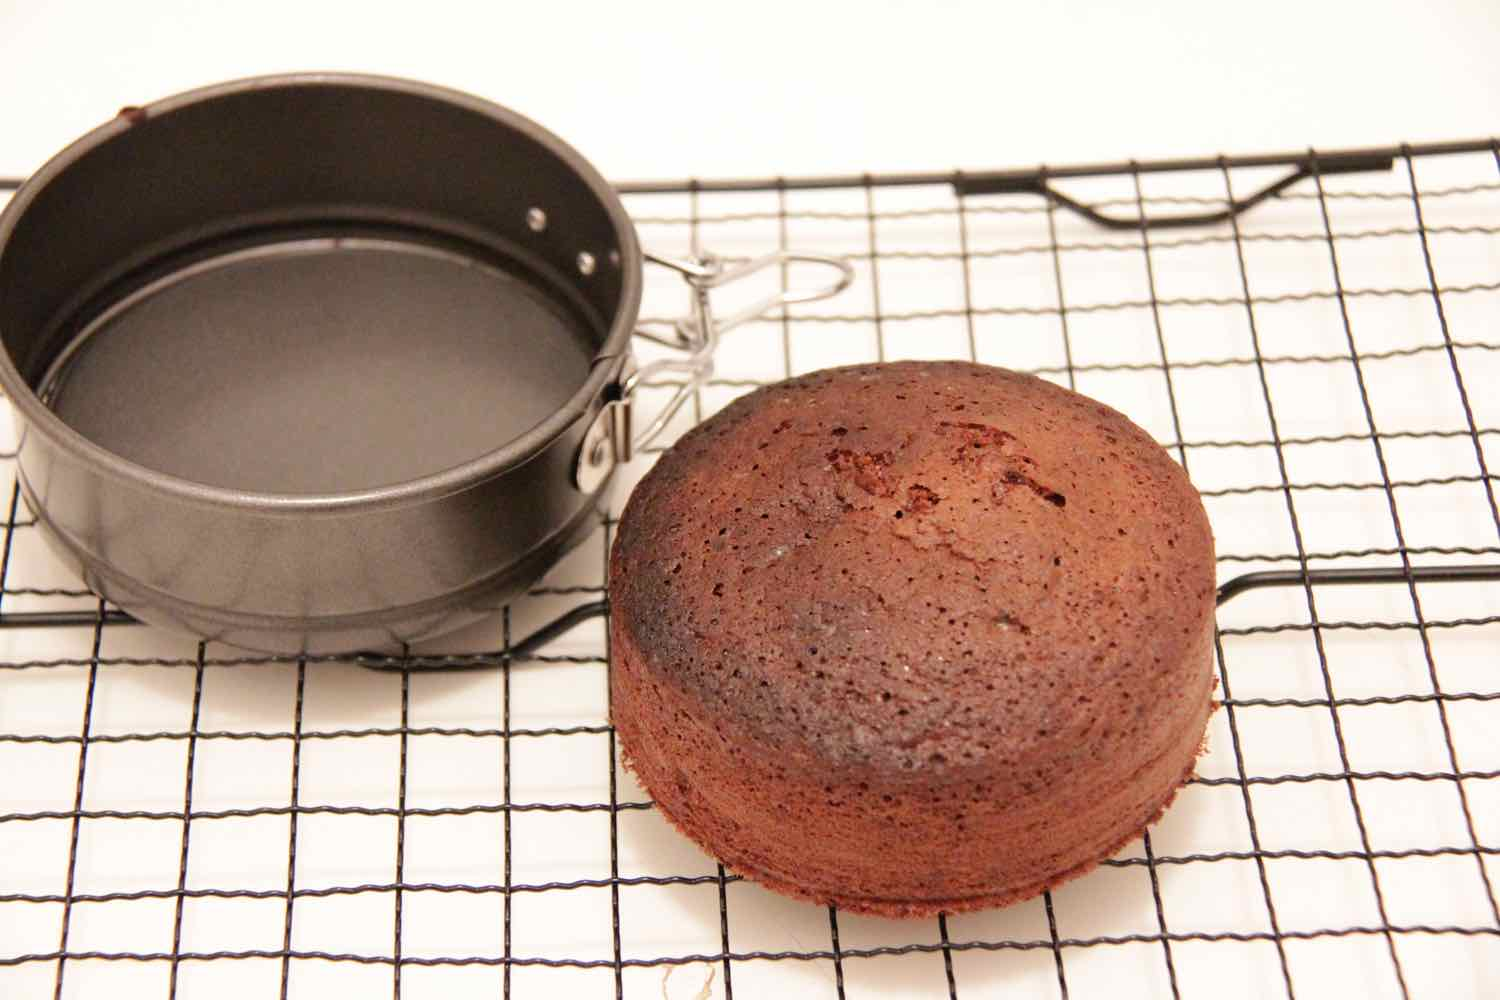 Chocolate sponge cake for one! Adapted from the Country Womens' Association Cookbook